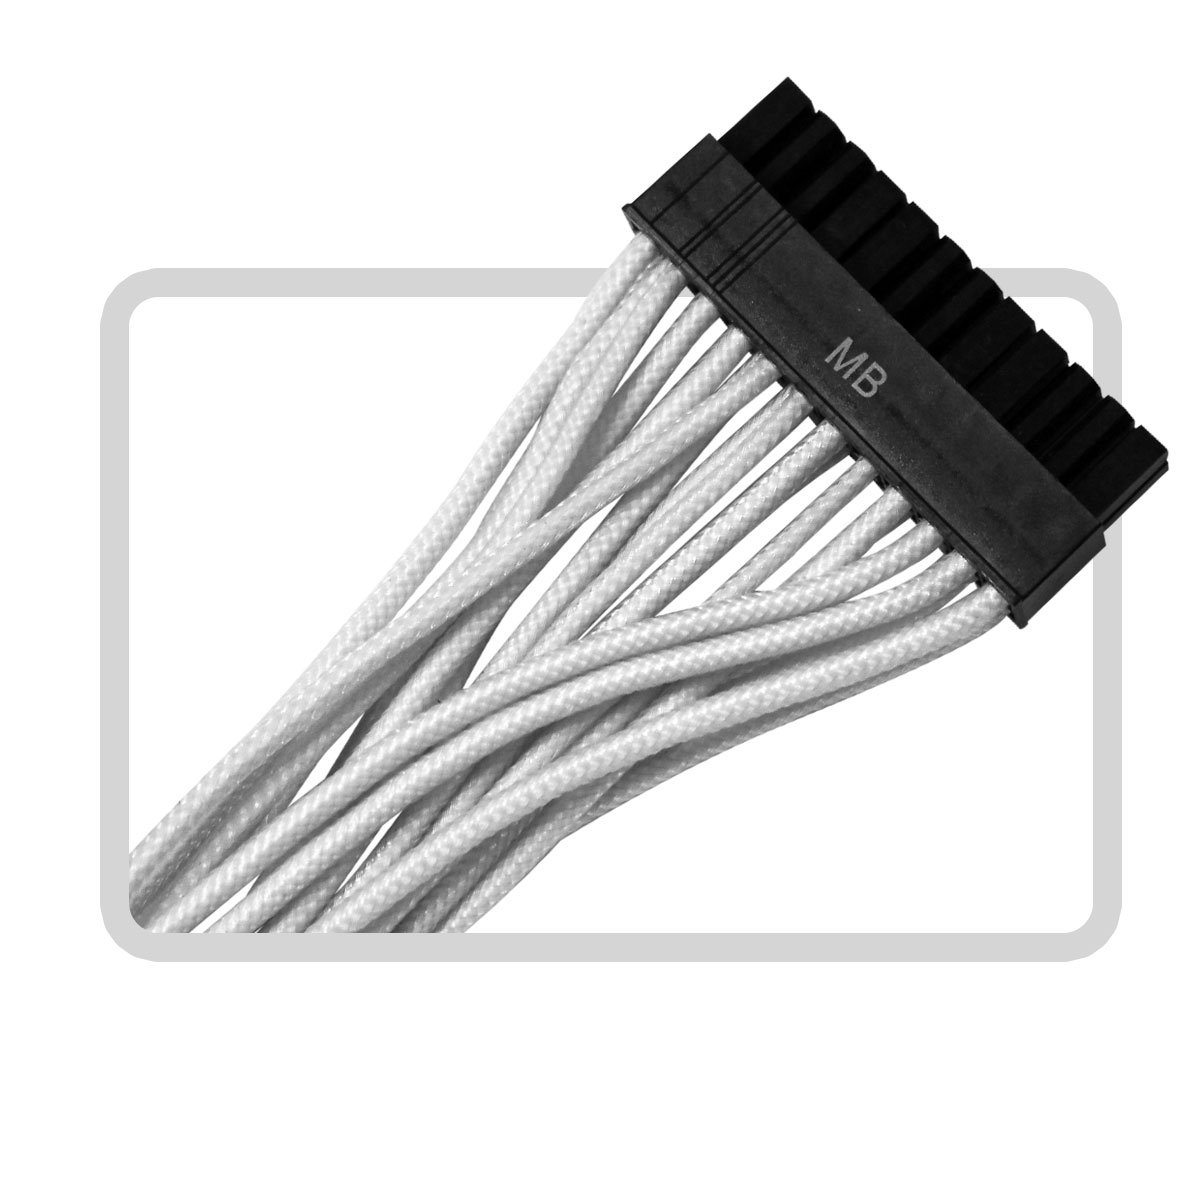 EVGA G2/G3/P2/T2  100-CW-1300-B9 Power Supply Cable Set (Individually Sleeved), White by EVGA (Image #8)